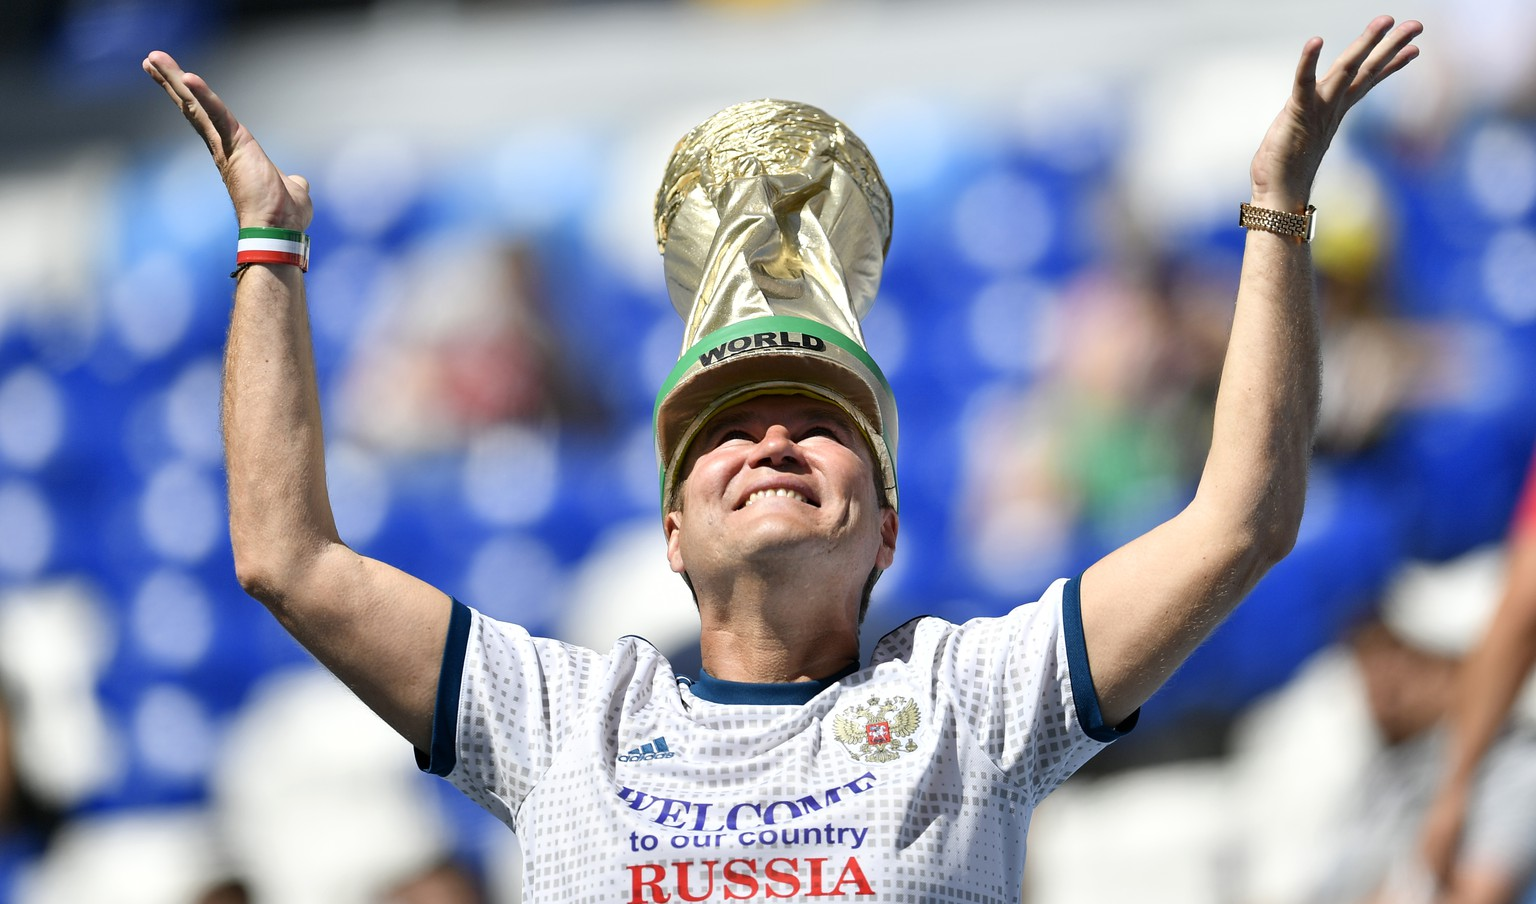 A fan with a hat depicting the World Cup trophy cheers prior to the group C match between Denmark and Australia at the 2018 soccer World Cup in the Samara Arena in Samara, Russia, Thursday, June 21, 2018. (AP Photo/Martin Meissner)